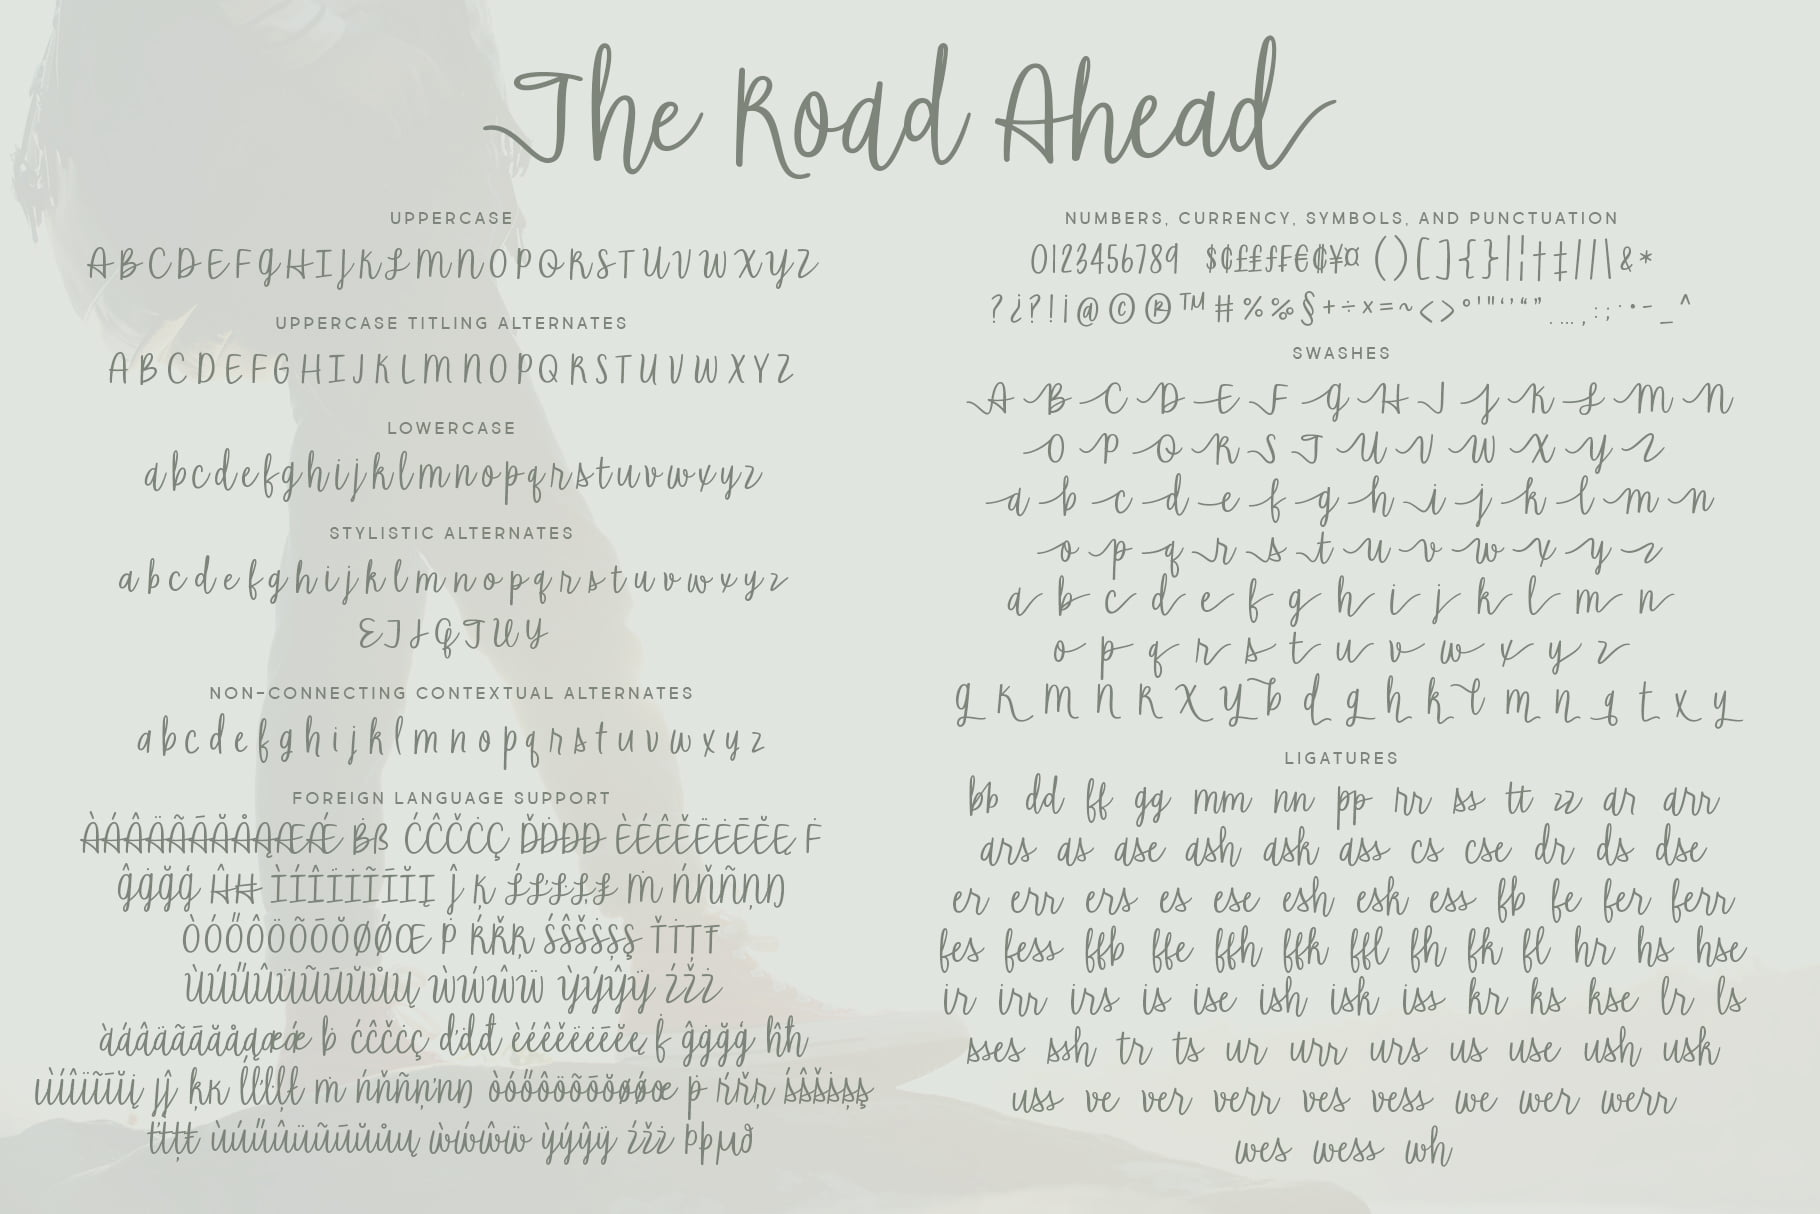 The Road Ahead Letters